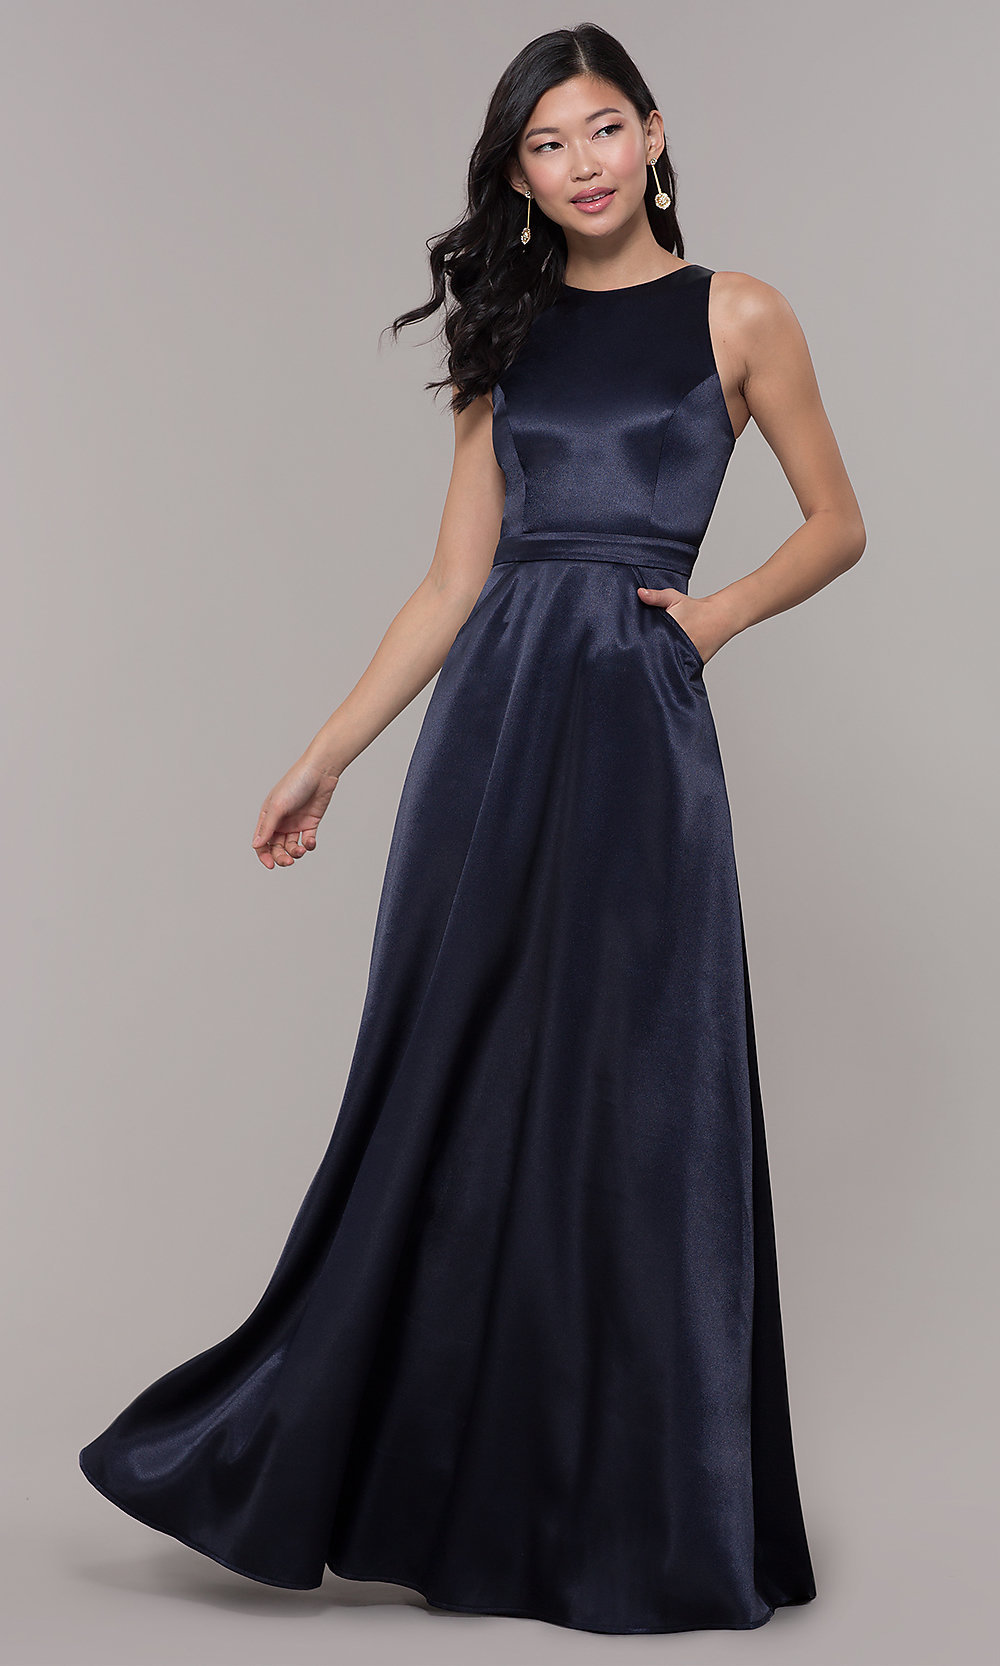 8e82b6122b271 ... high-neck satin prom dress by PromGirl. Style: LP-. Touch to zoom